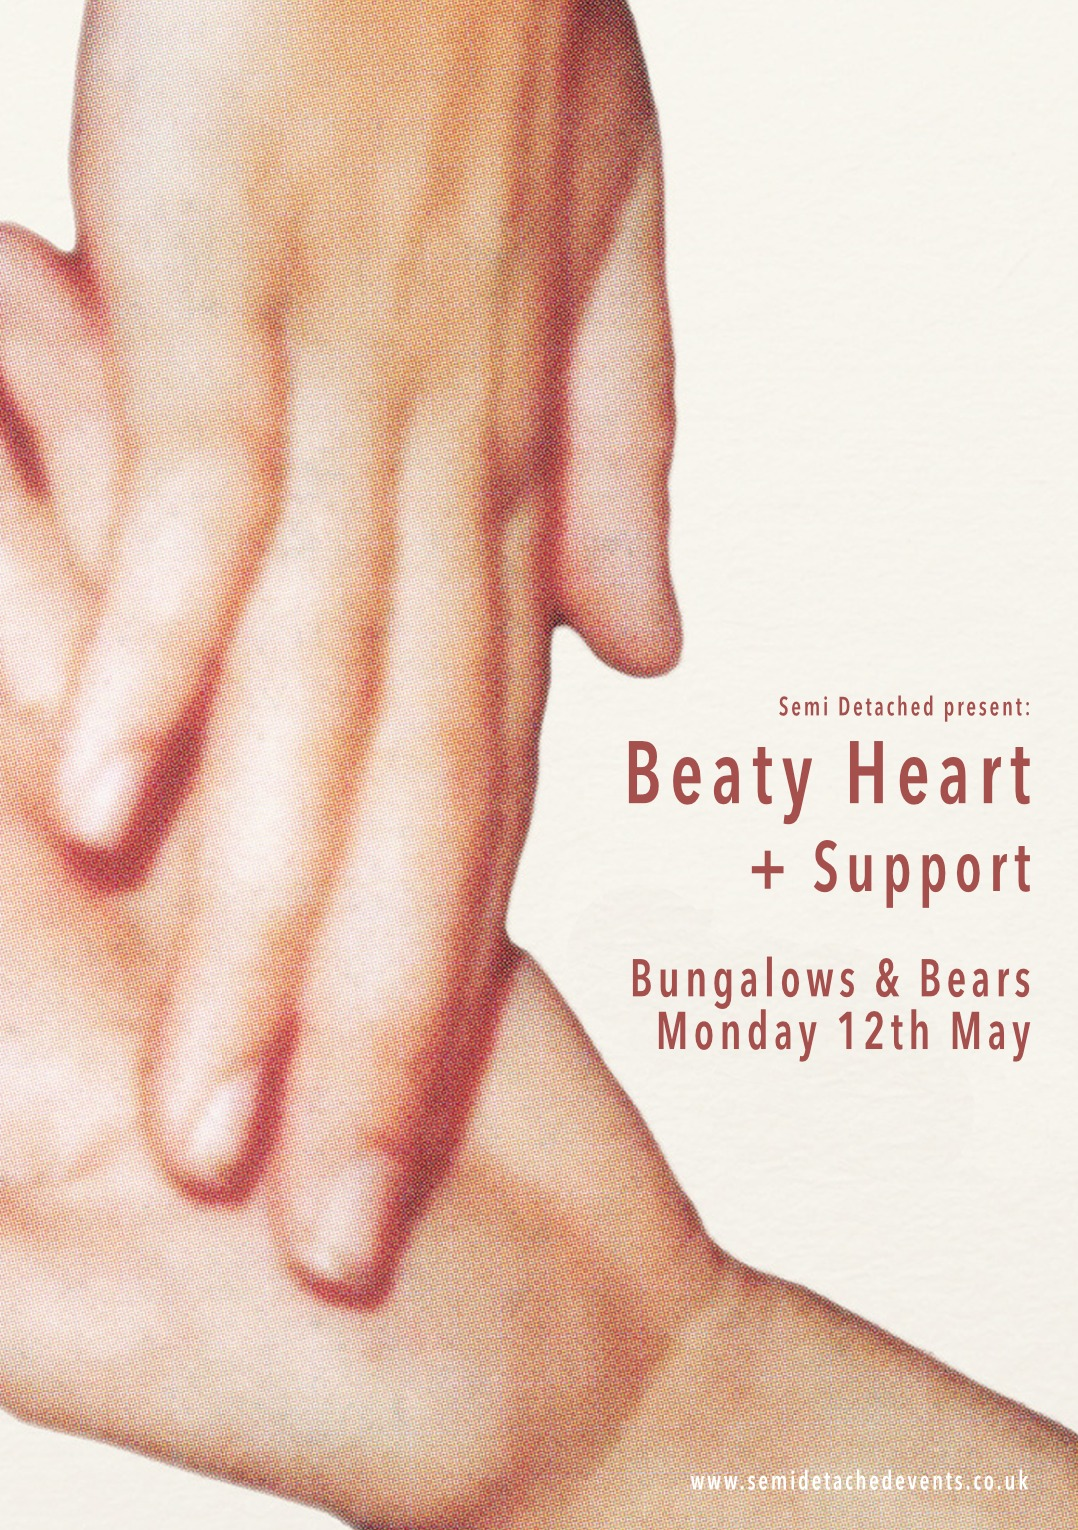 NEW SHOW: Beaty Heart return to Sheffield on Monday 12th May. More info available here. http://fb.com/semidetachedevents